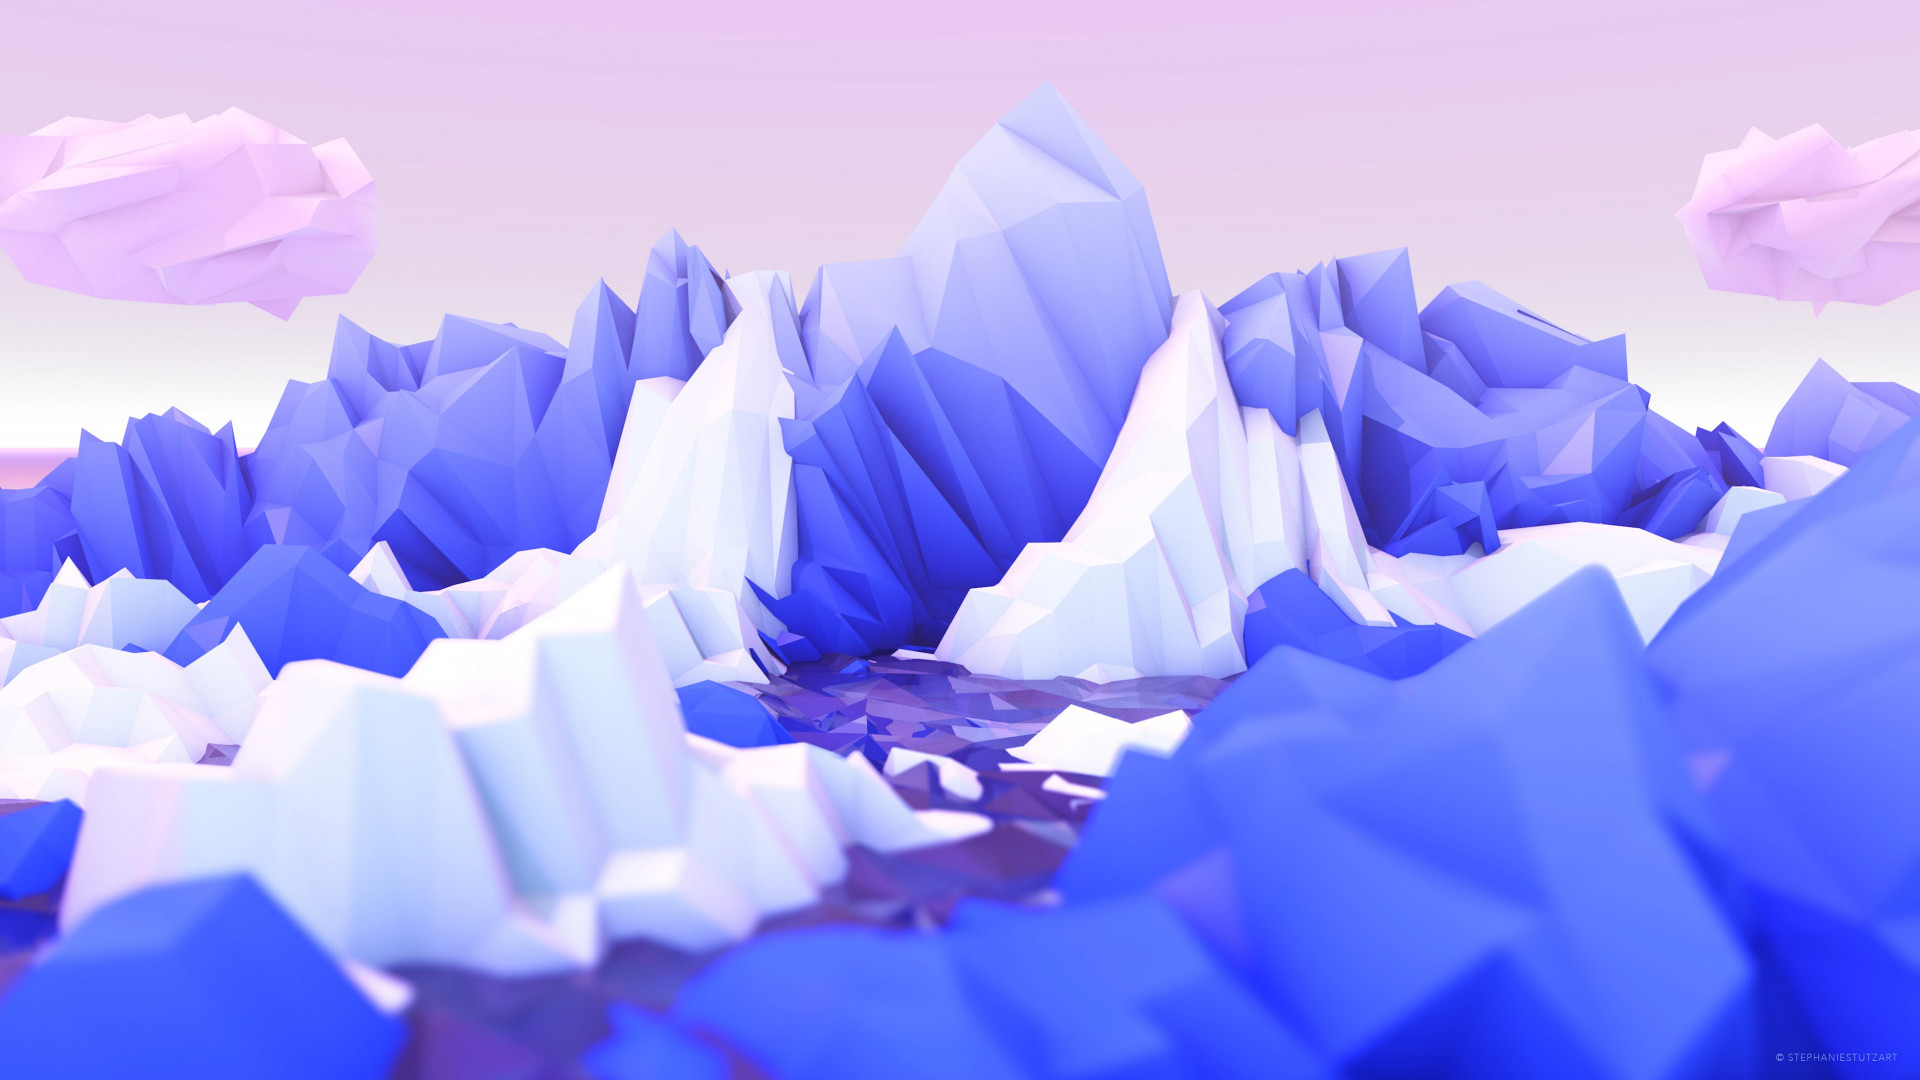 Low poly graphic design wallpaper 1920x1080